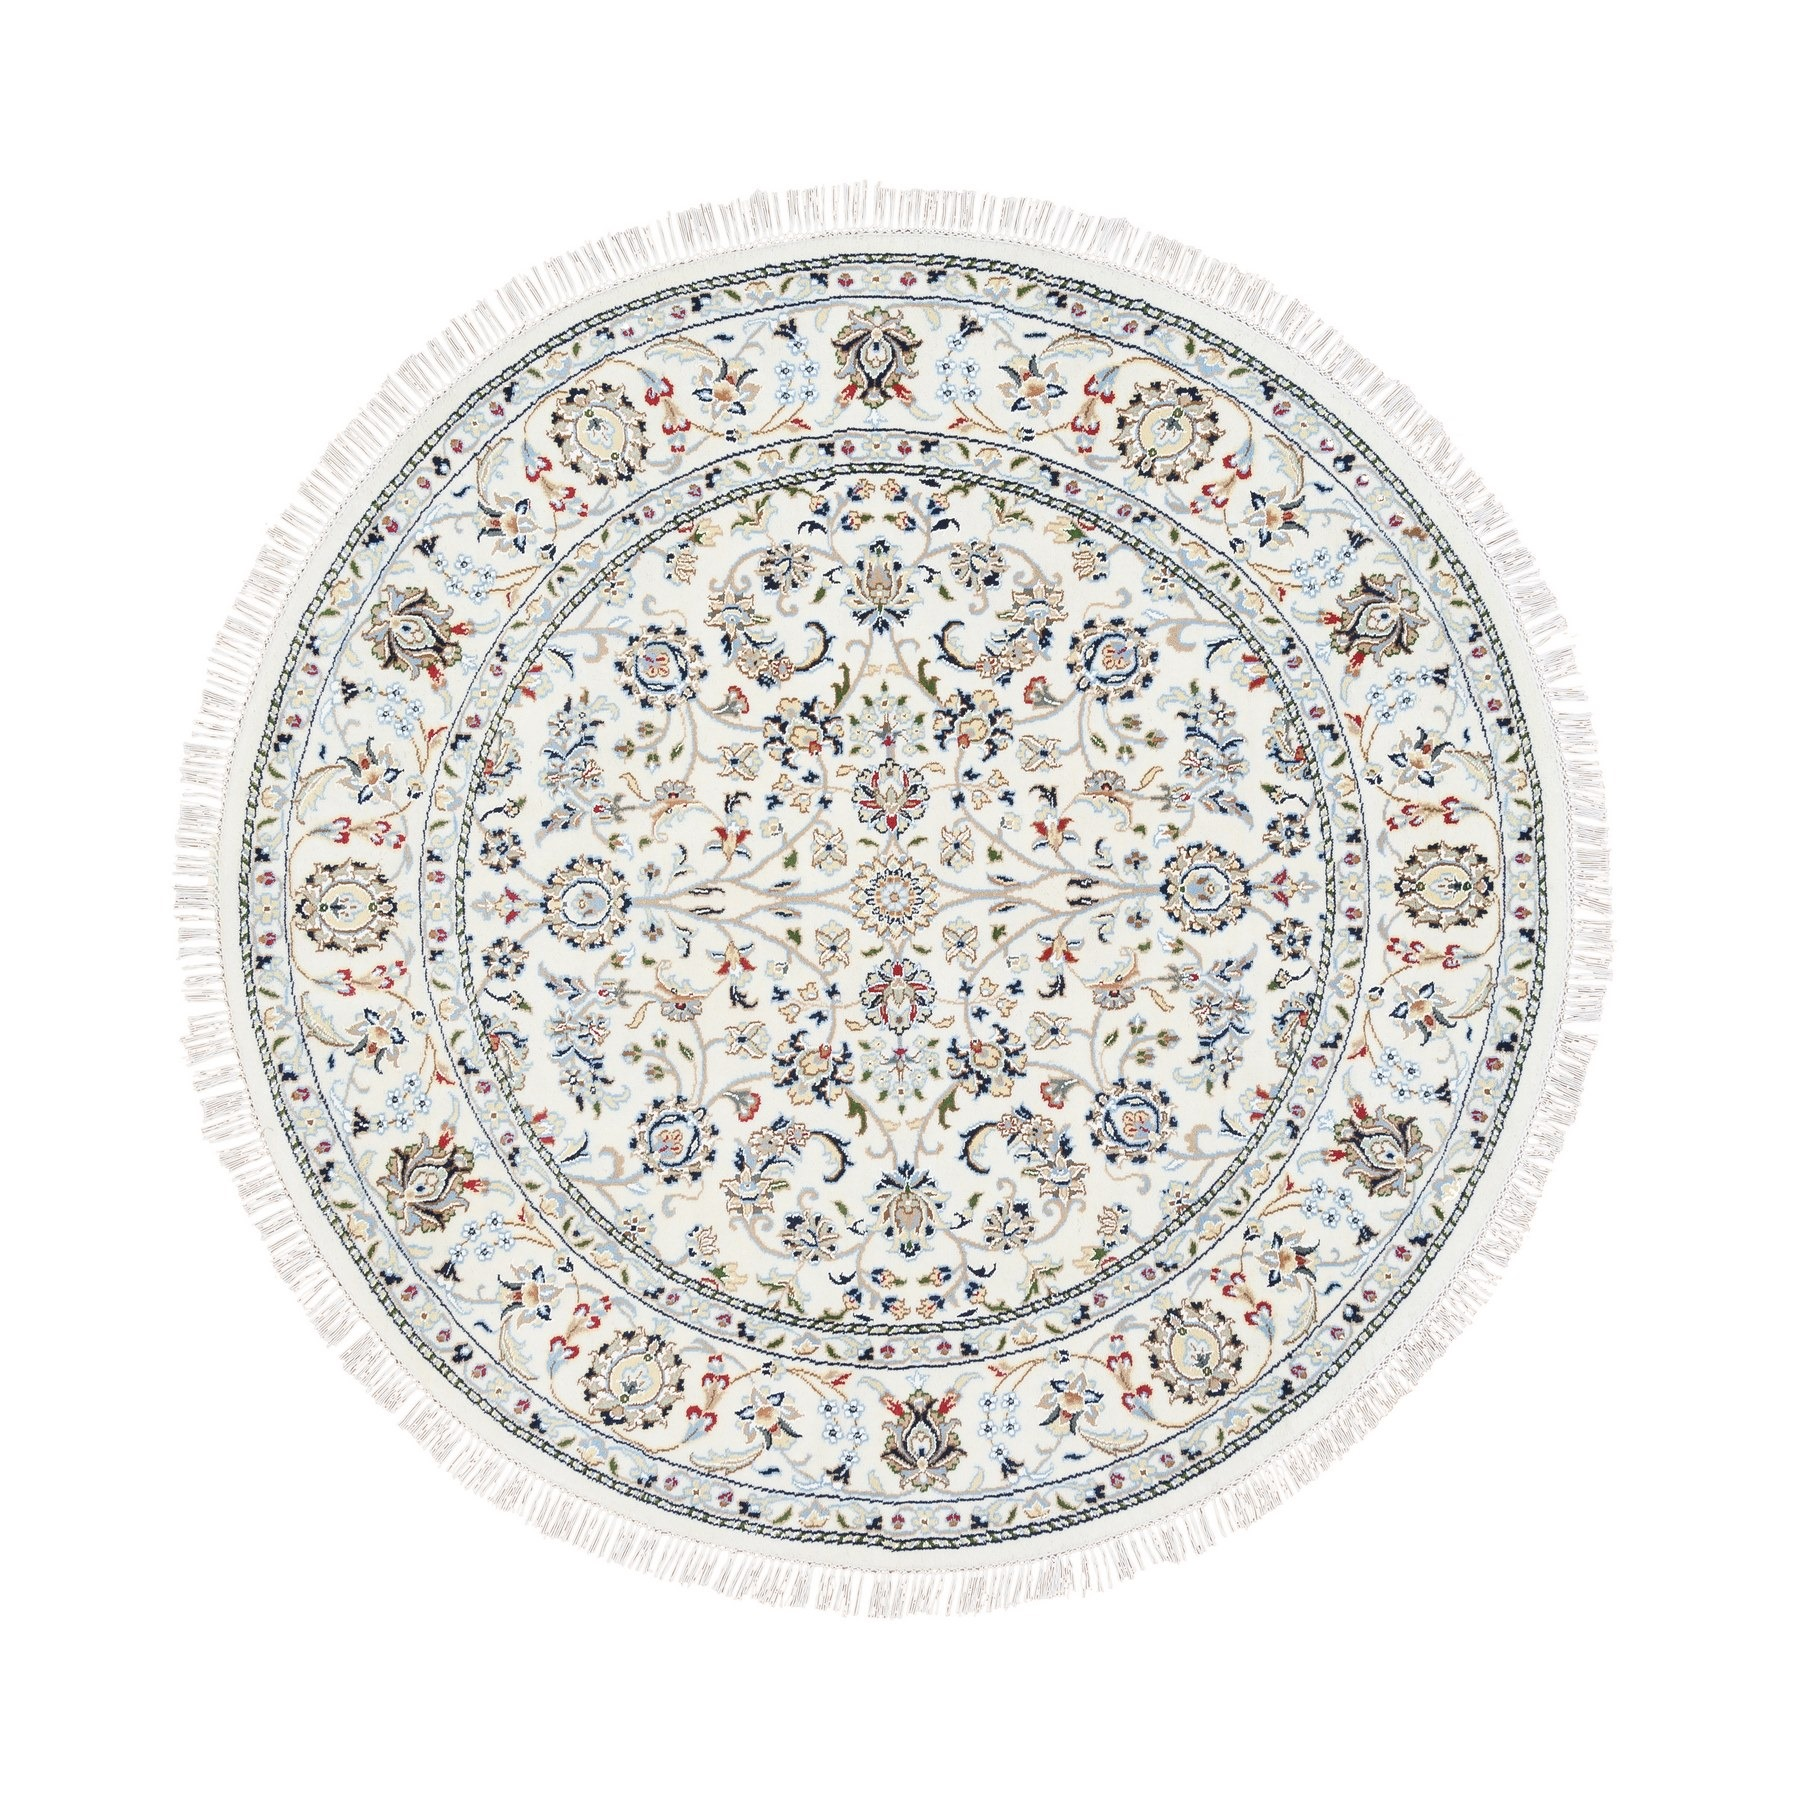 Pirniakan Collection Hand Knotted Ivory Rug No: 1125576